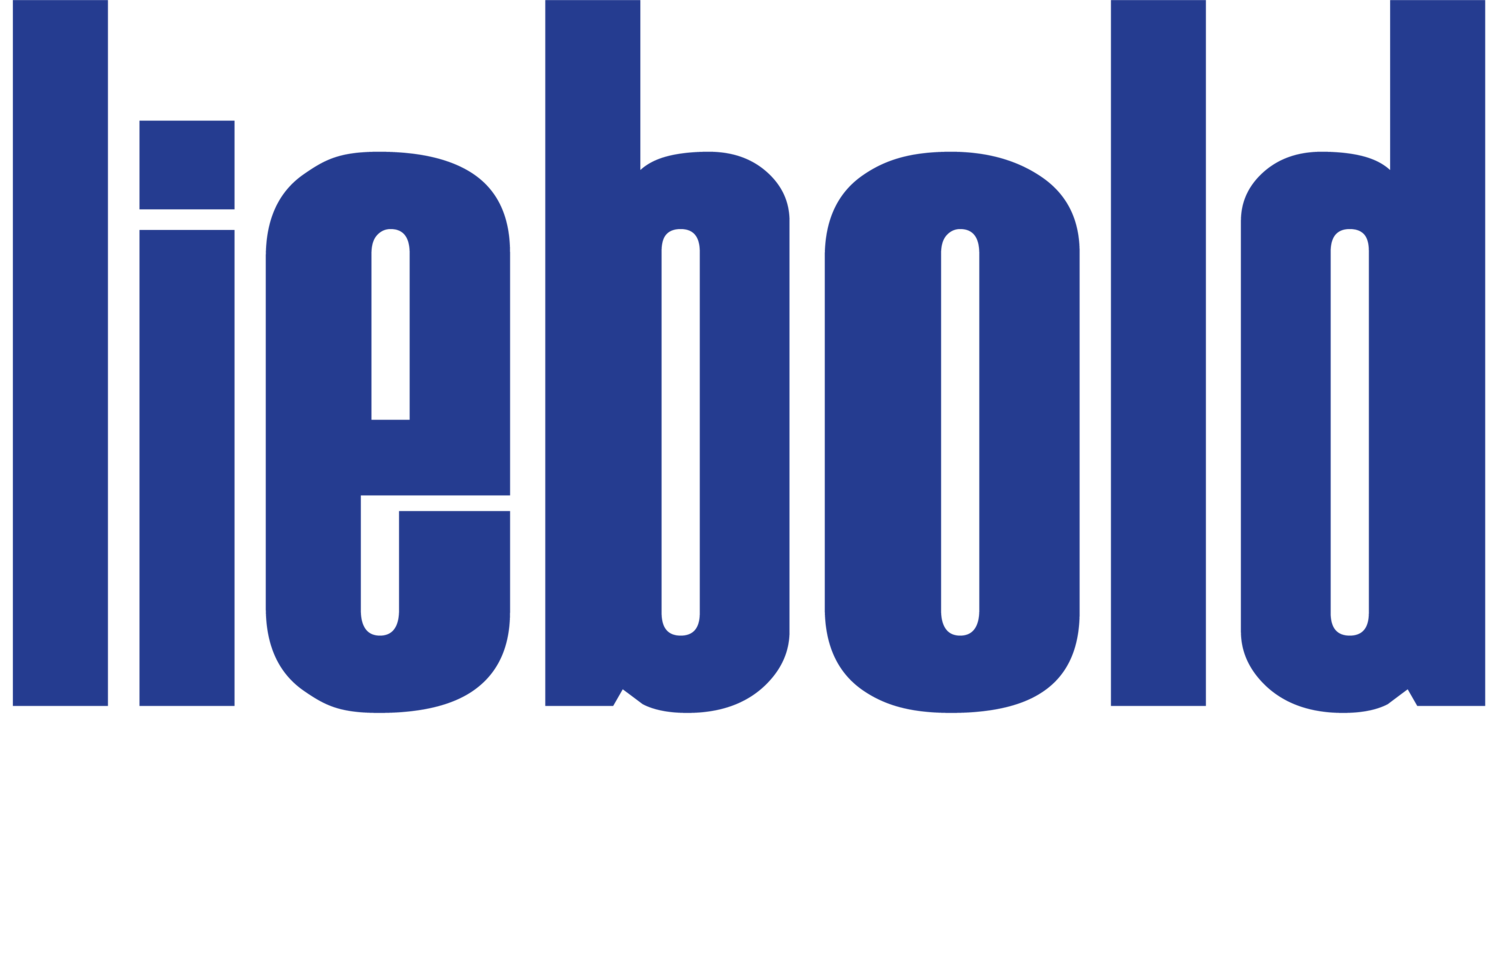 Liebold & Associates, Inc.